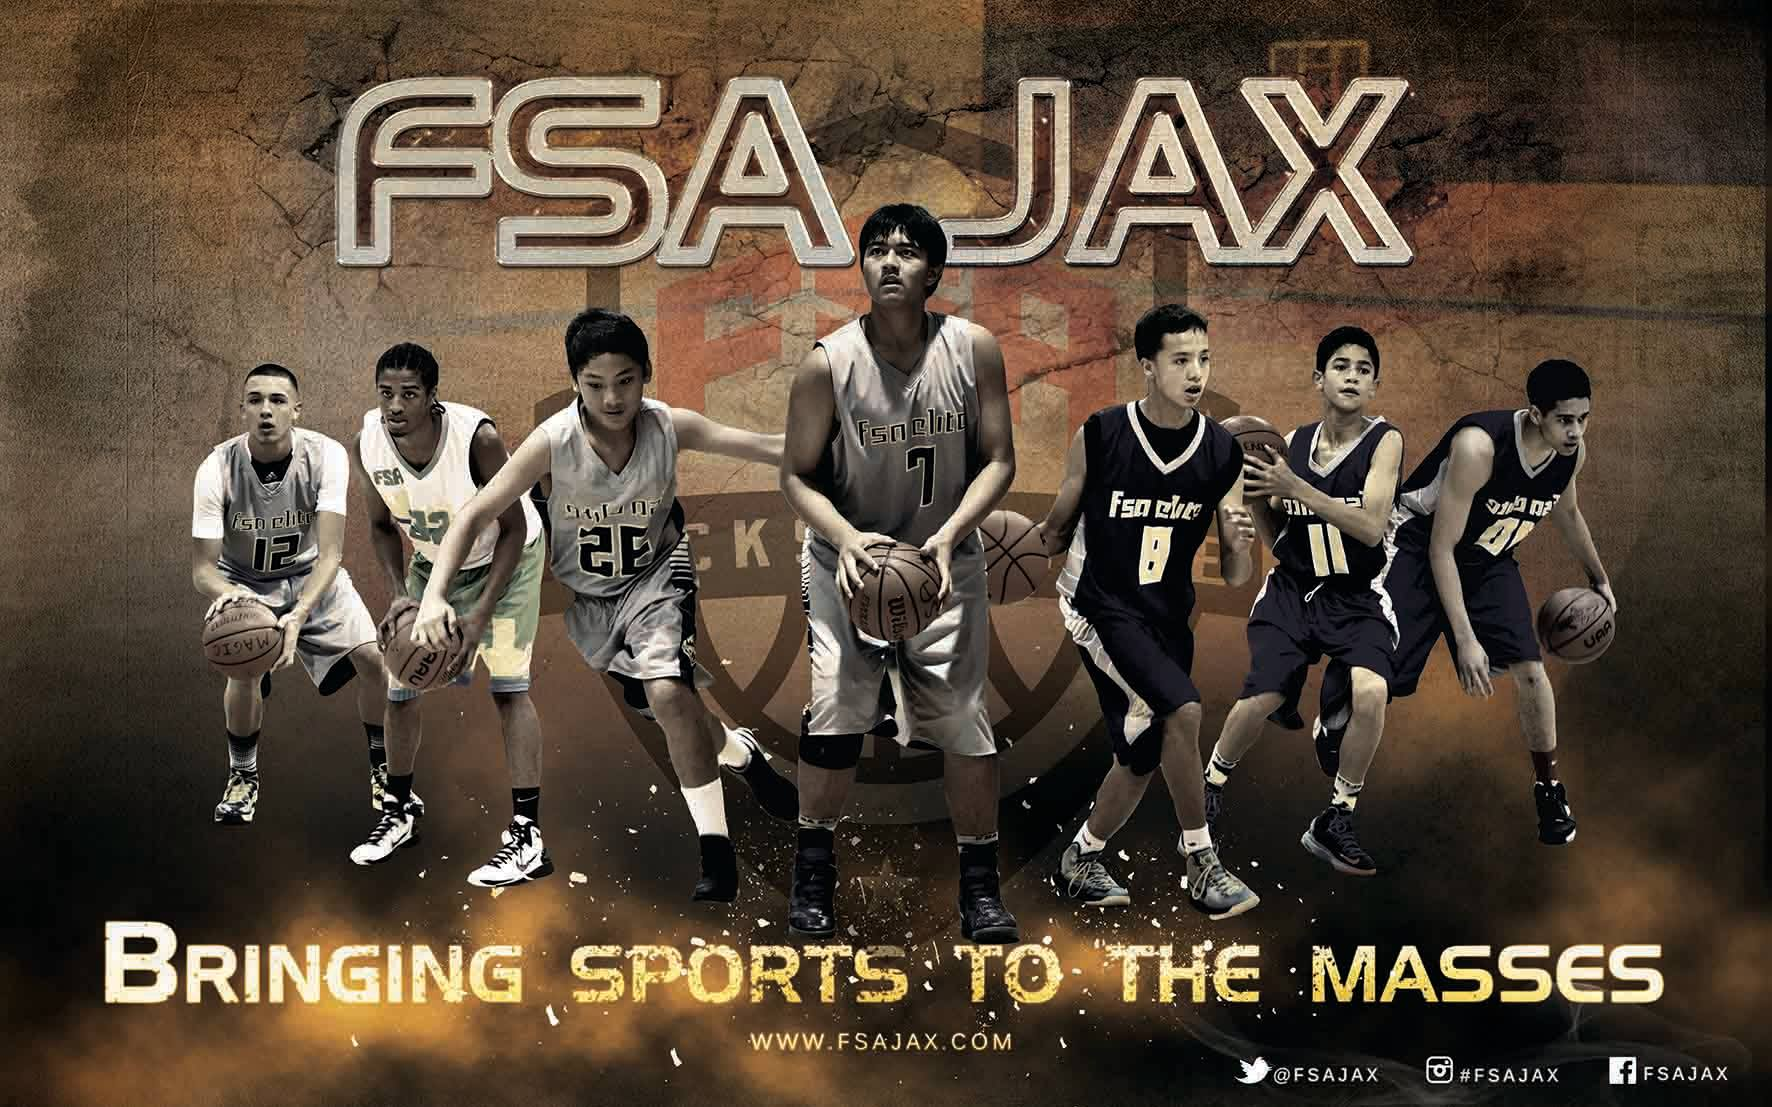 FSA Jacksonville Basketball League